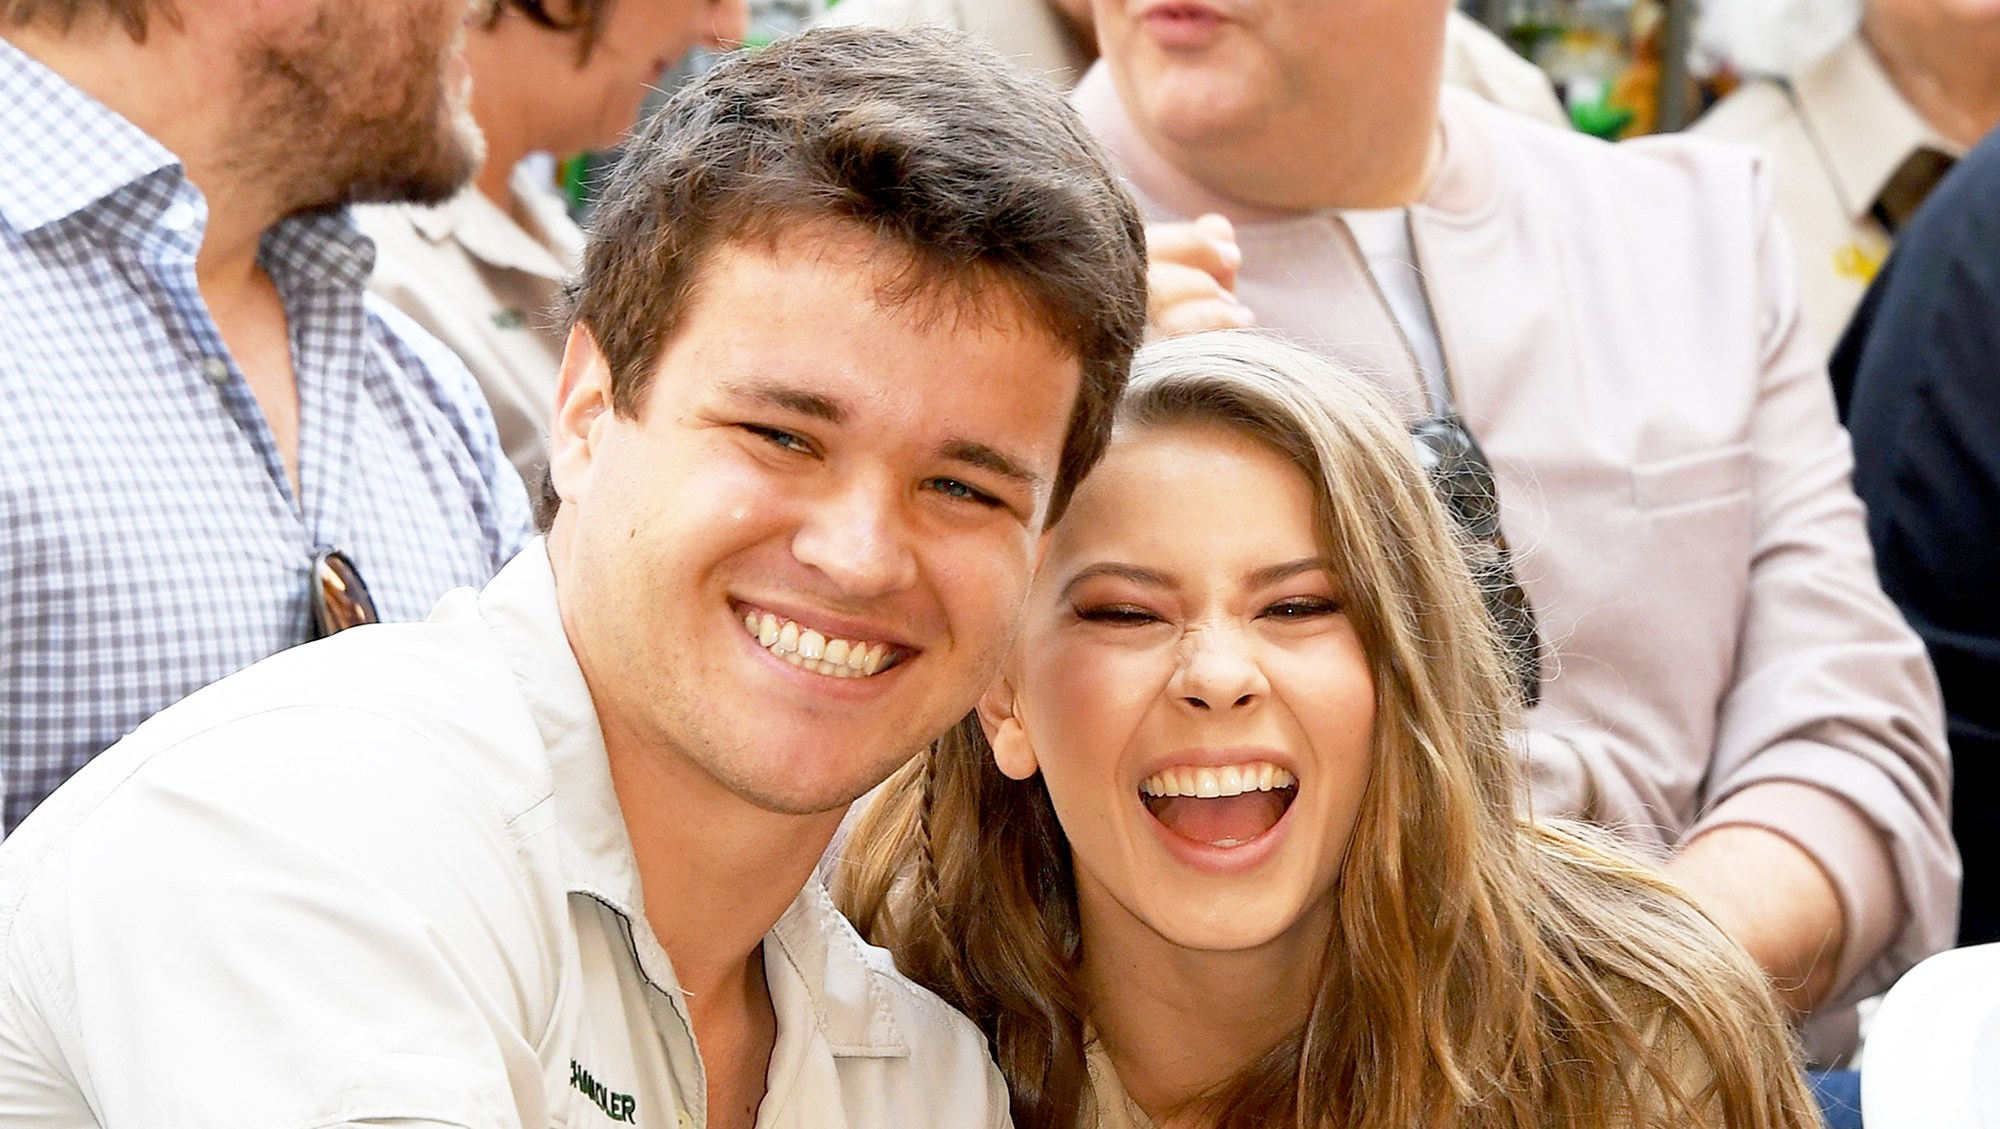 Chandler Powell and Bindi Irwin attend the ceremony for Steve Irwin with a Star on the Hollywood Walk of Fame in Hollywood, California on April 26, 2018.